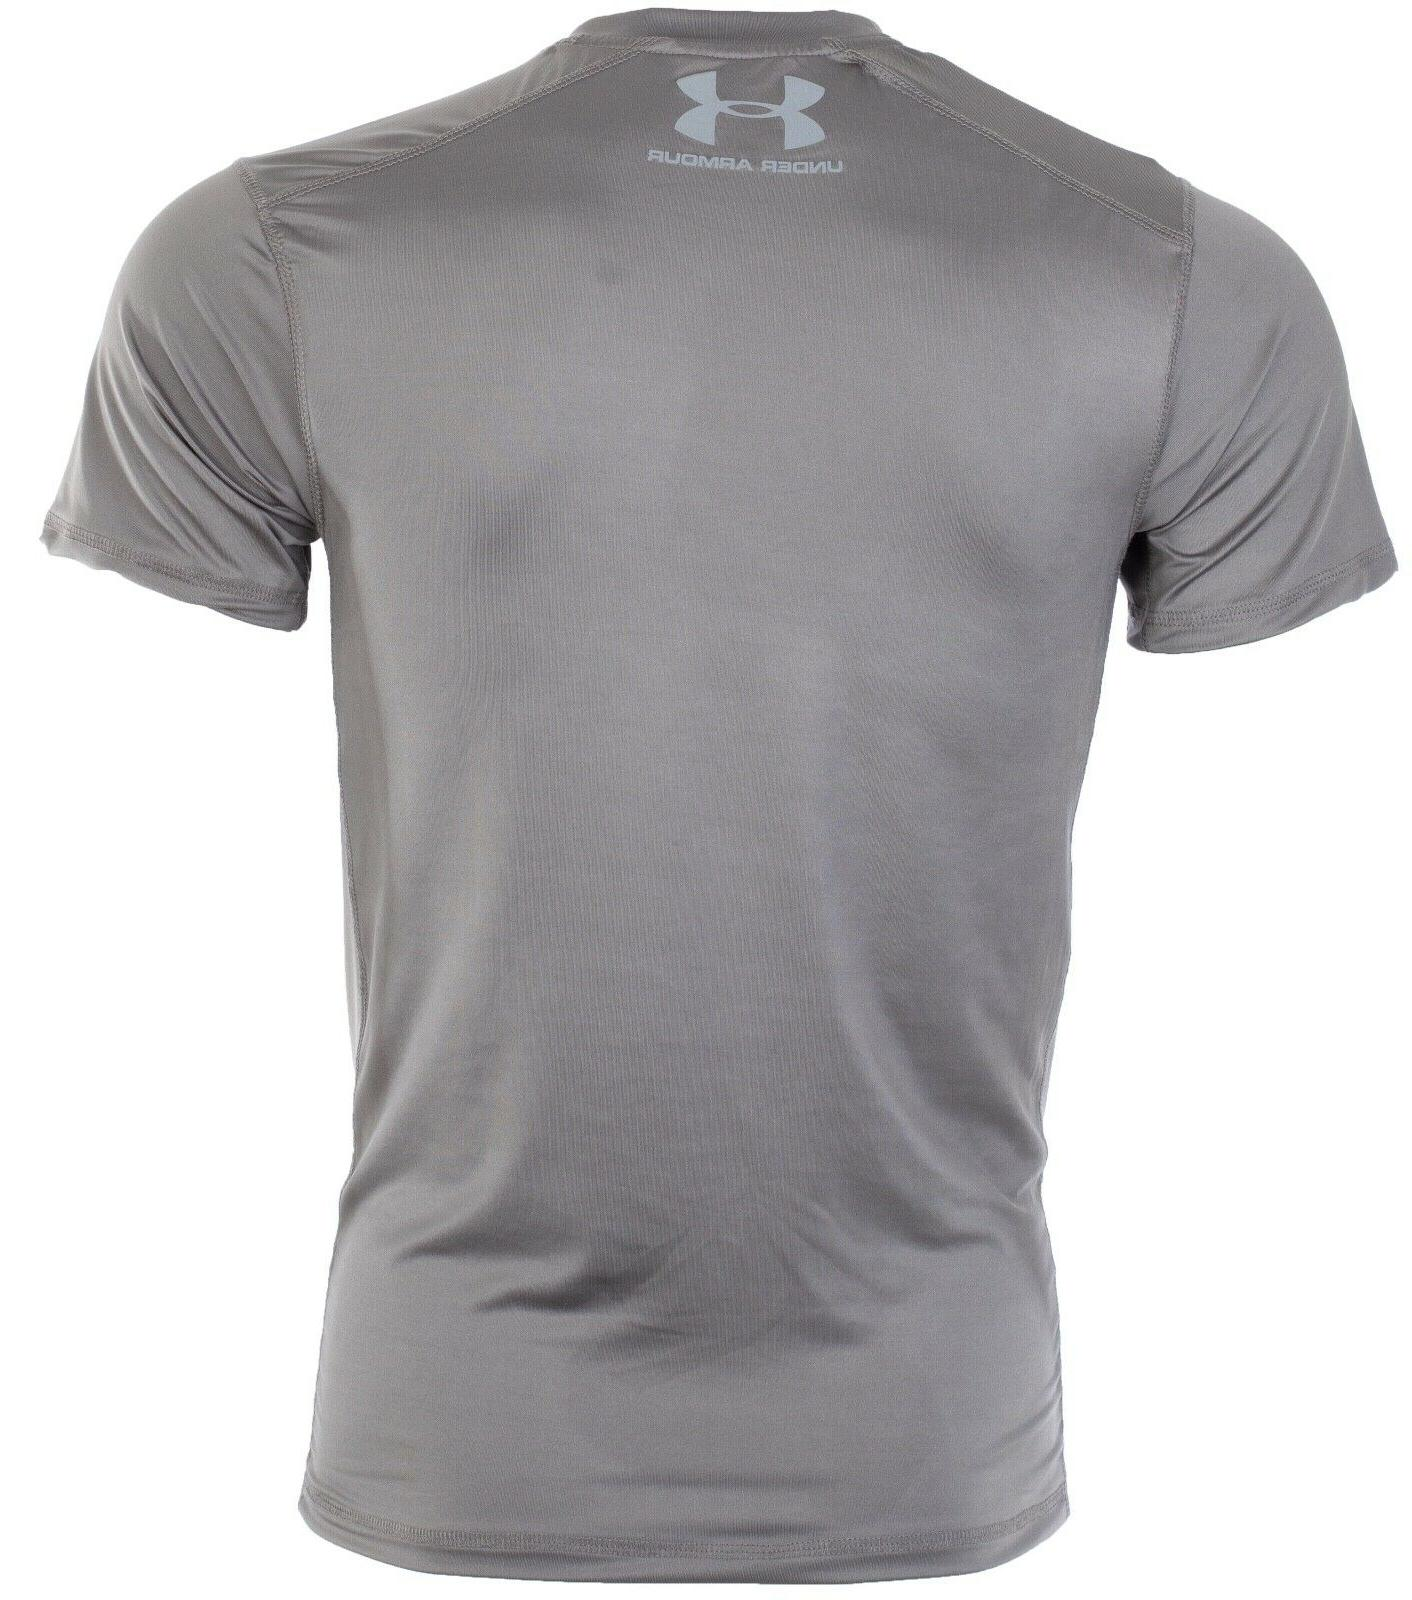 UNDER ARMOUR Mens Athletic T-Shirt SOLID Semi Fitted